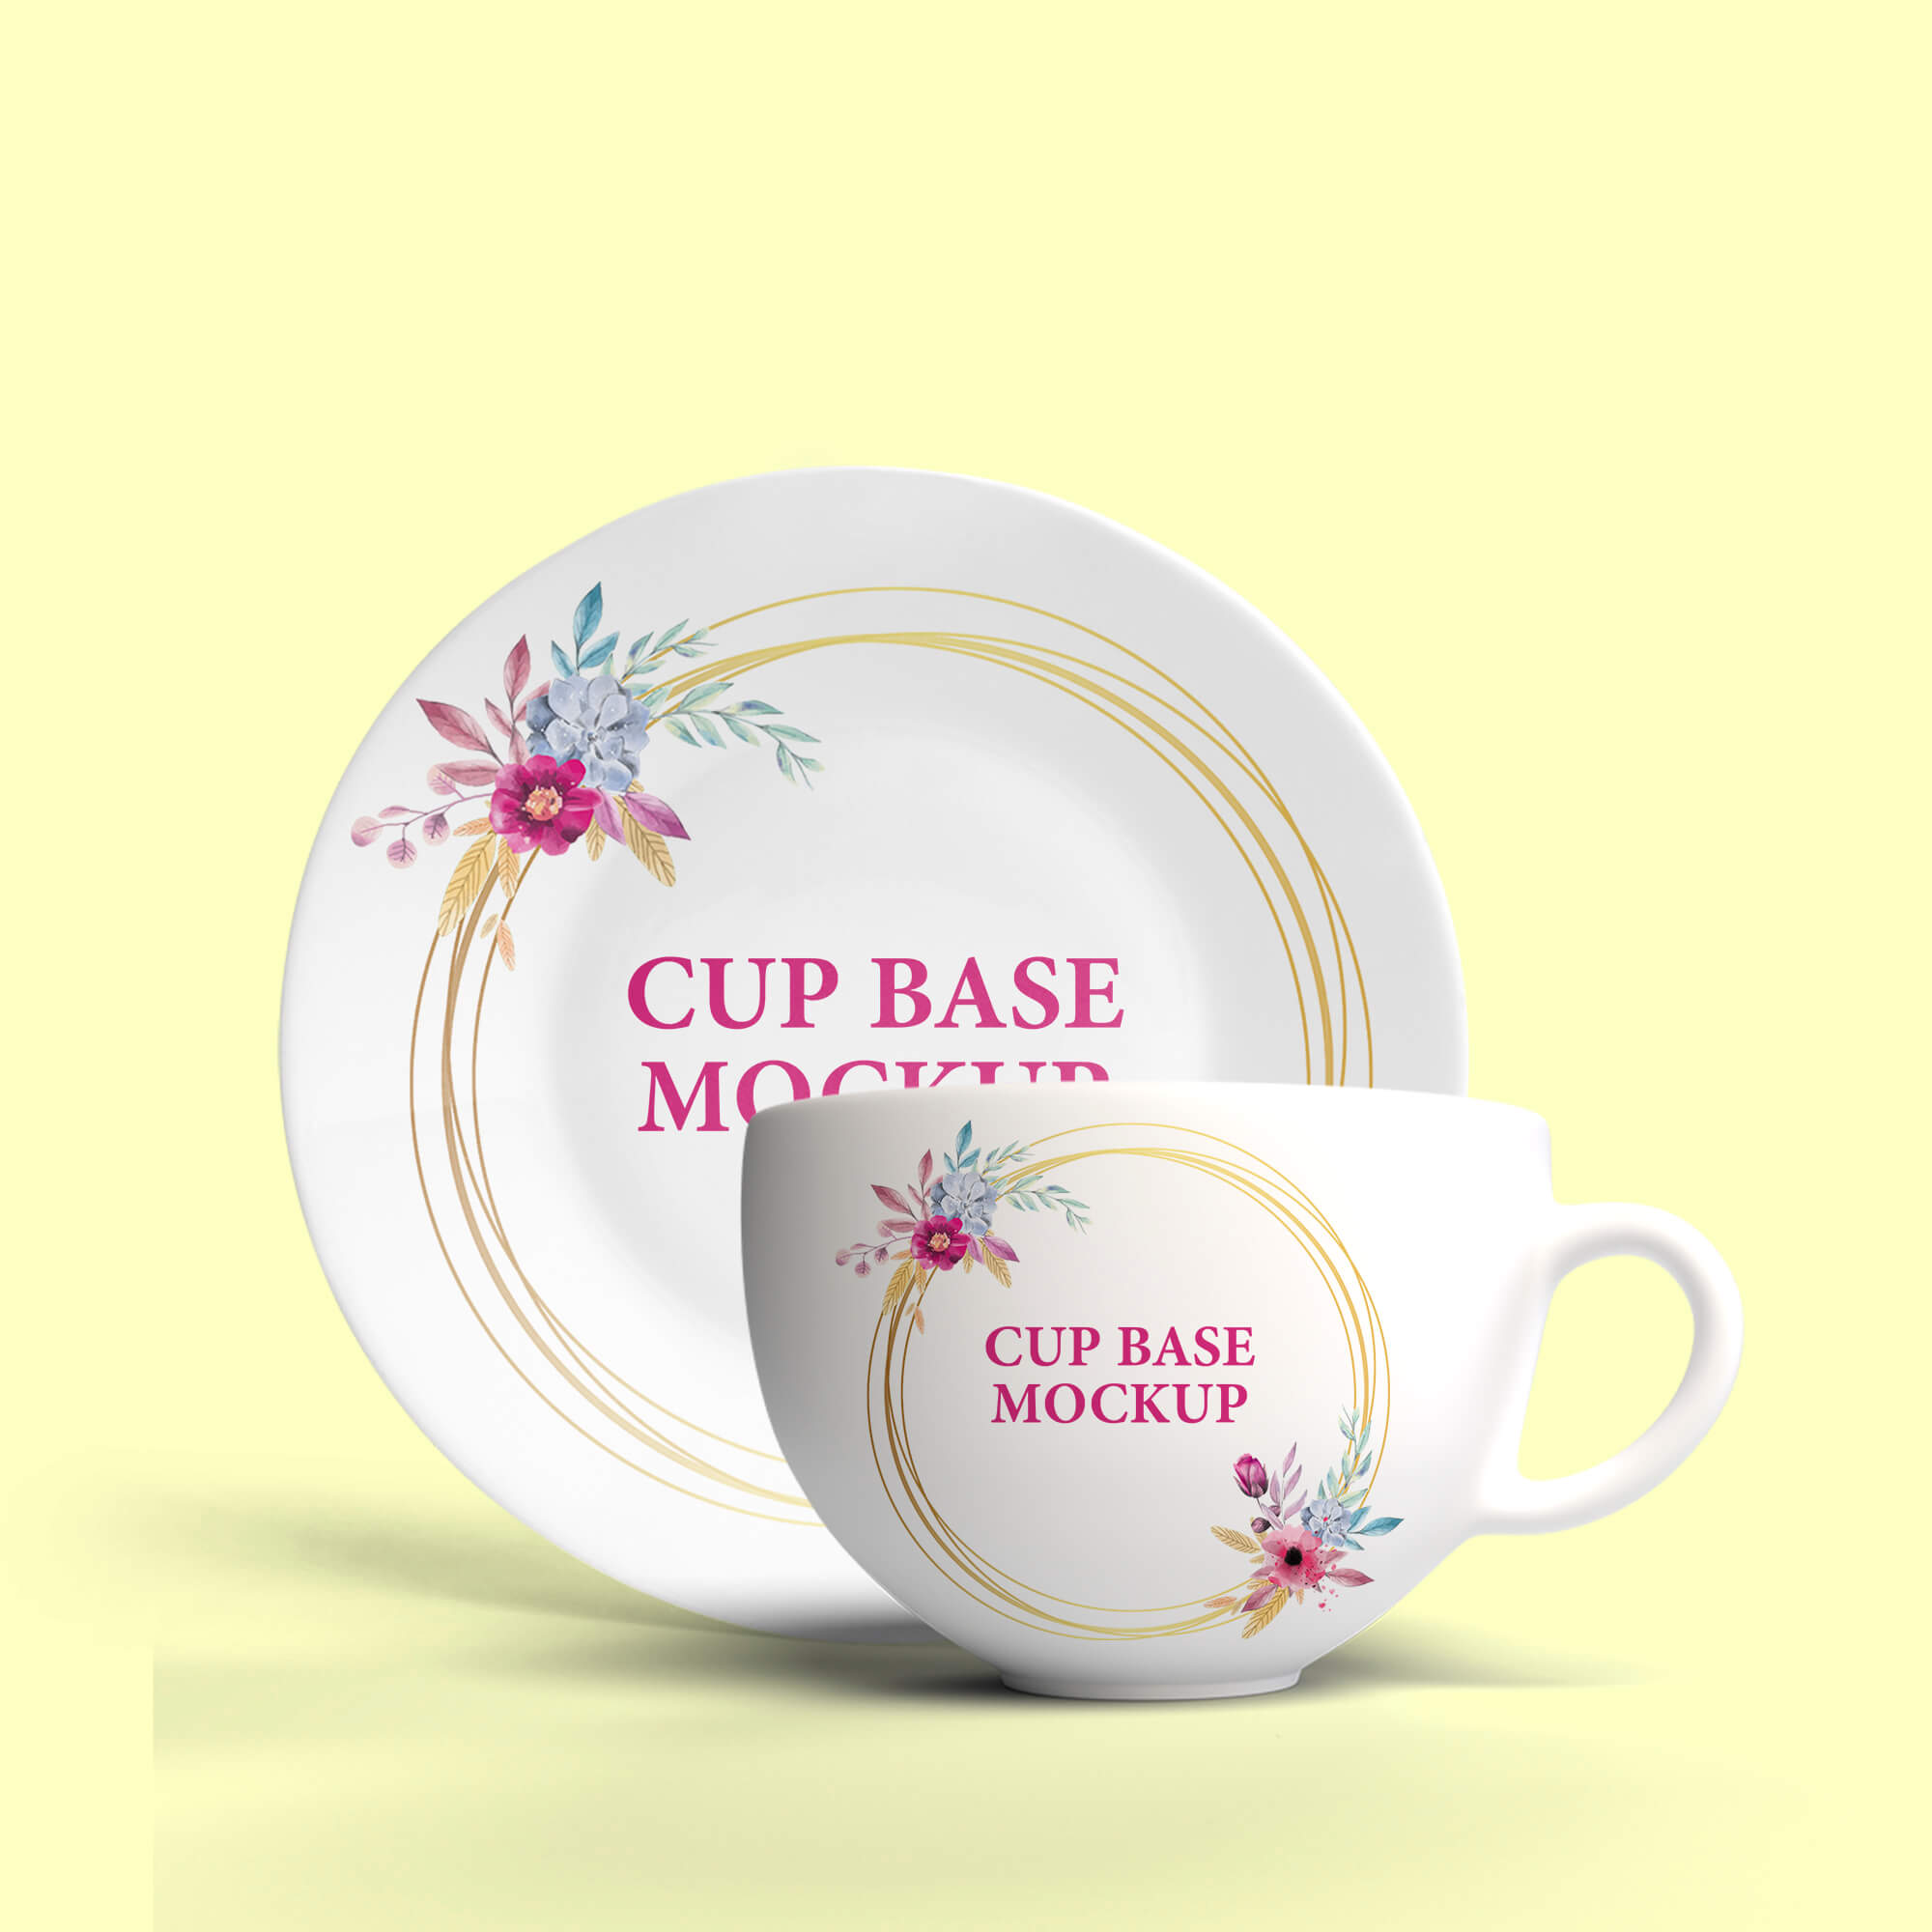 Design Free Cup Base Mockup PSD Template